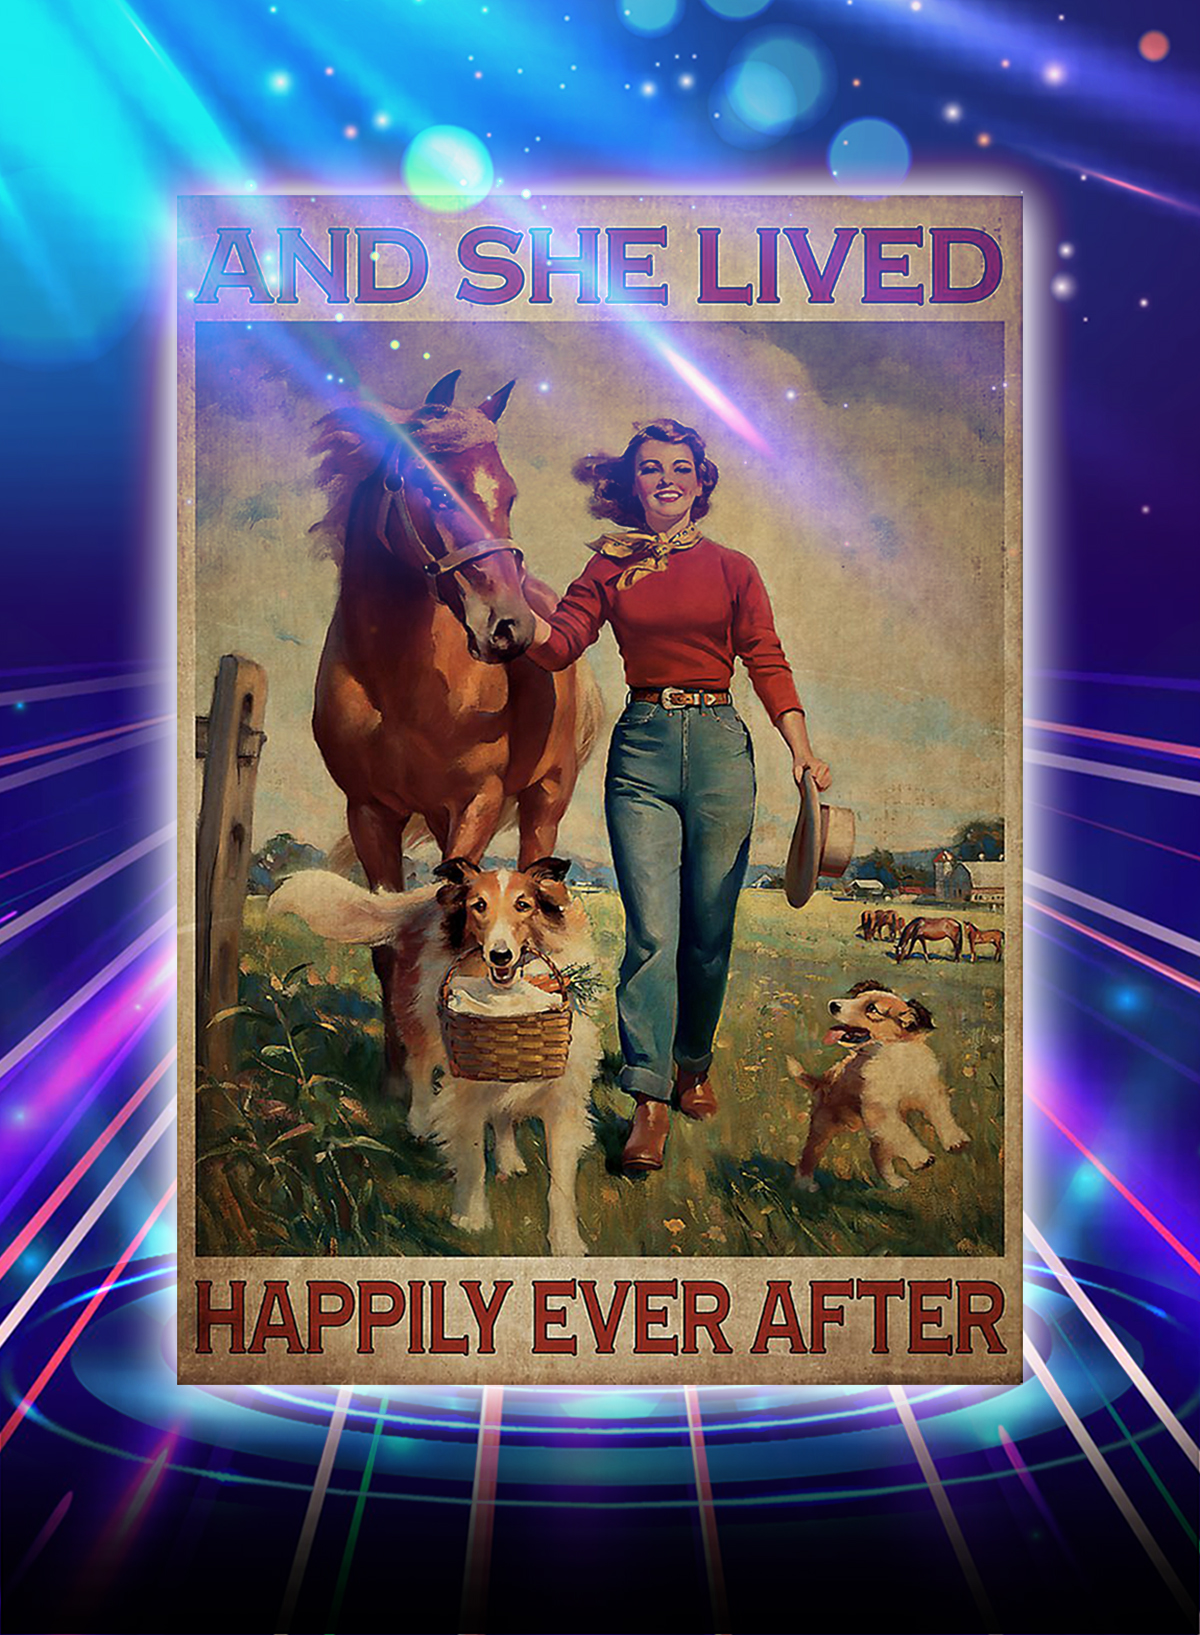 And she lived happily ever after horse and dog poster - A1